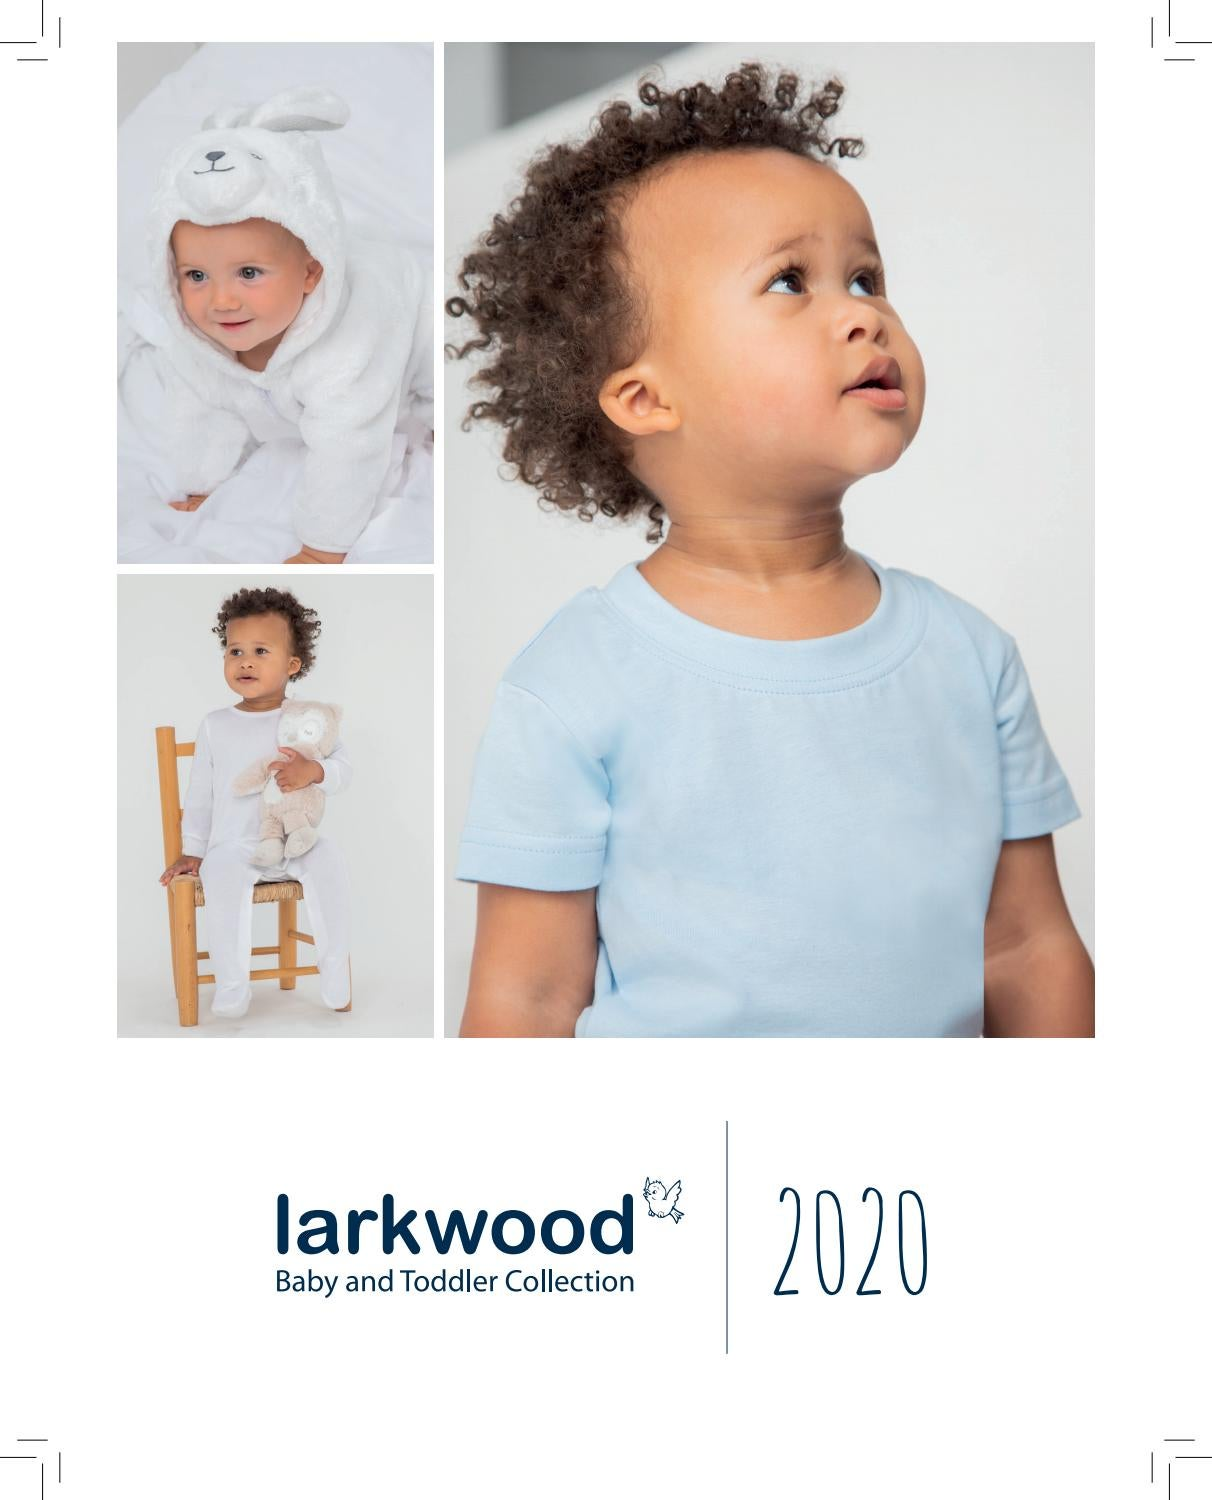 Larkwood Baby Long Sleeved T-shirt LW021 Children/'s Crew Neck Cotton Top Tee